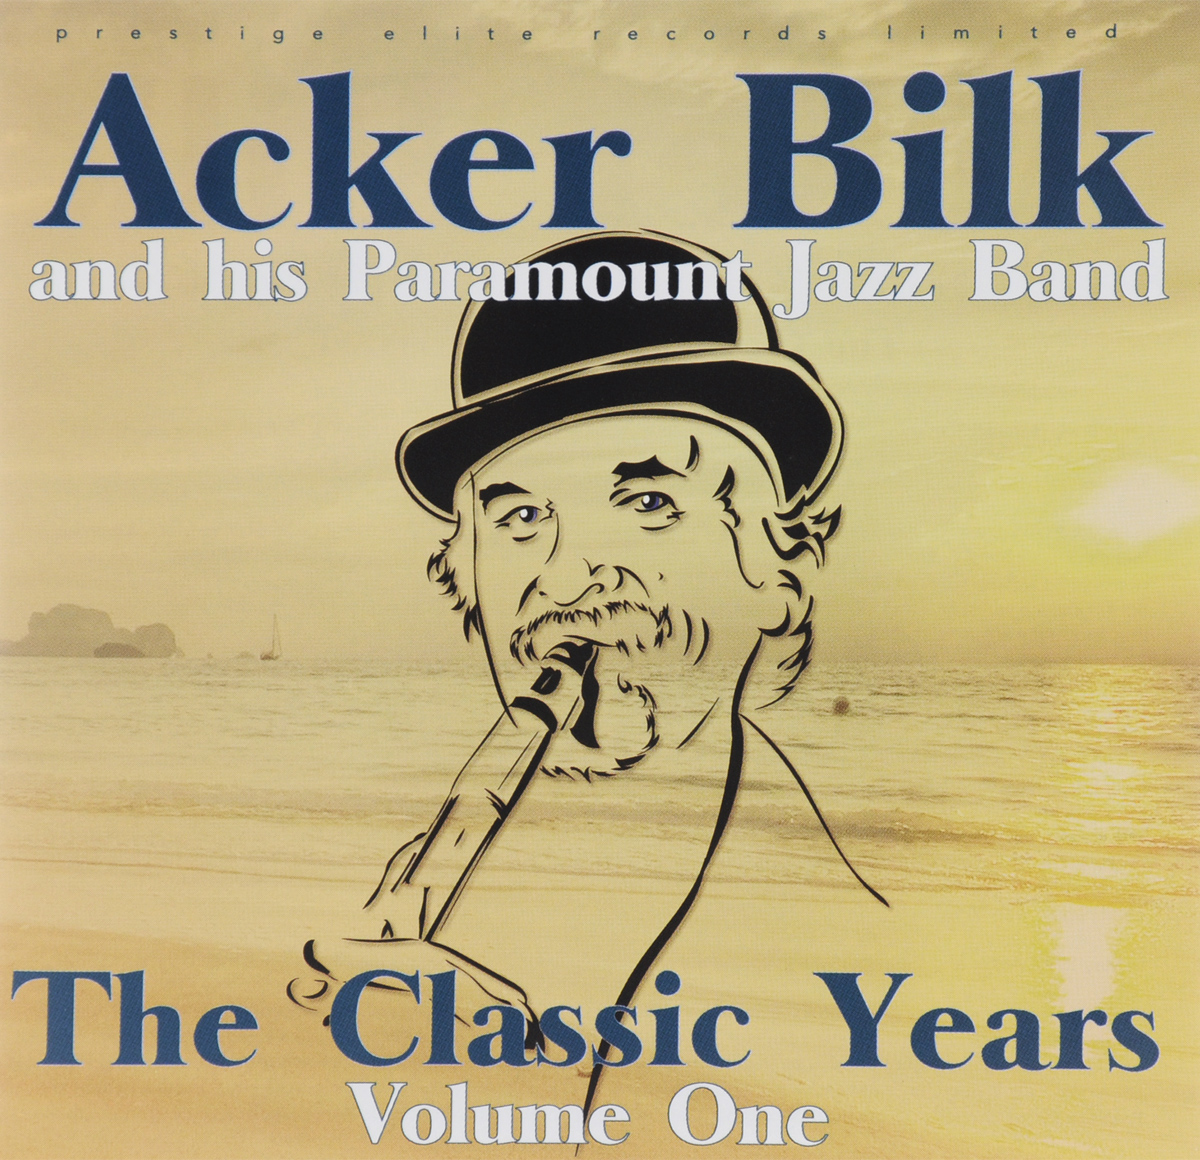 Acker Bilk and His Paramount Jazz Band Acker Bilk and His Paramount Jazz Band. Classic Years. Volume One